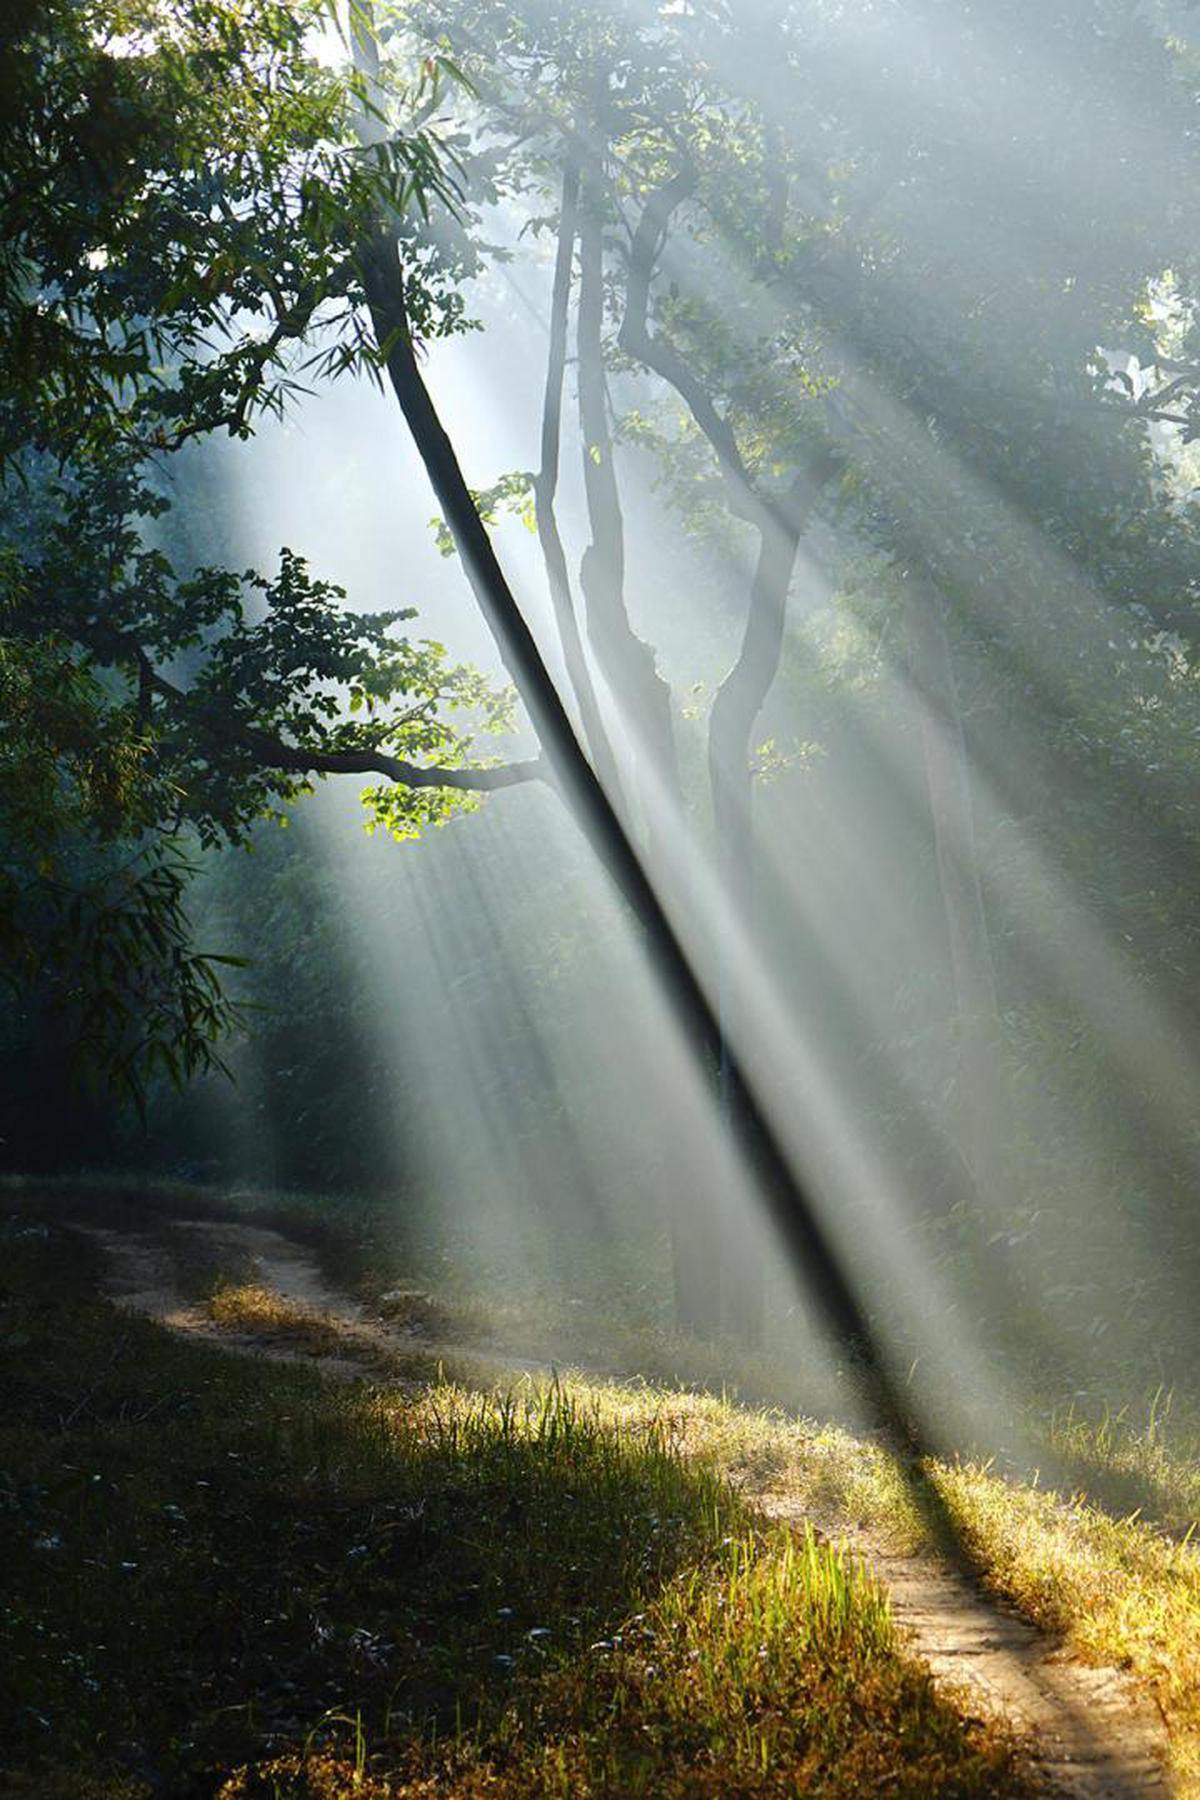 Image of Nature, Sunlight, Atmospheric phenomenon, Tree, Light, Natural environment etc.